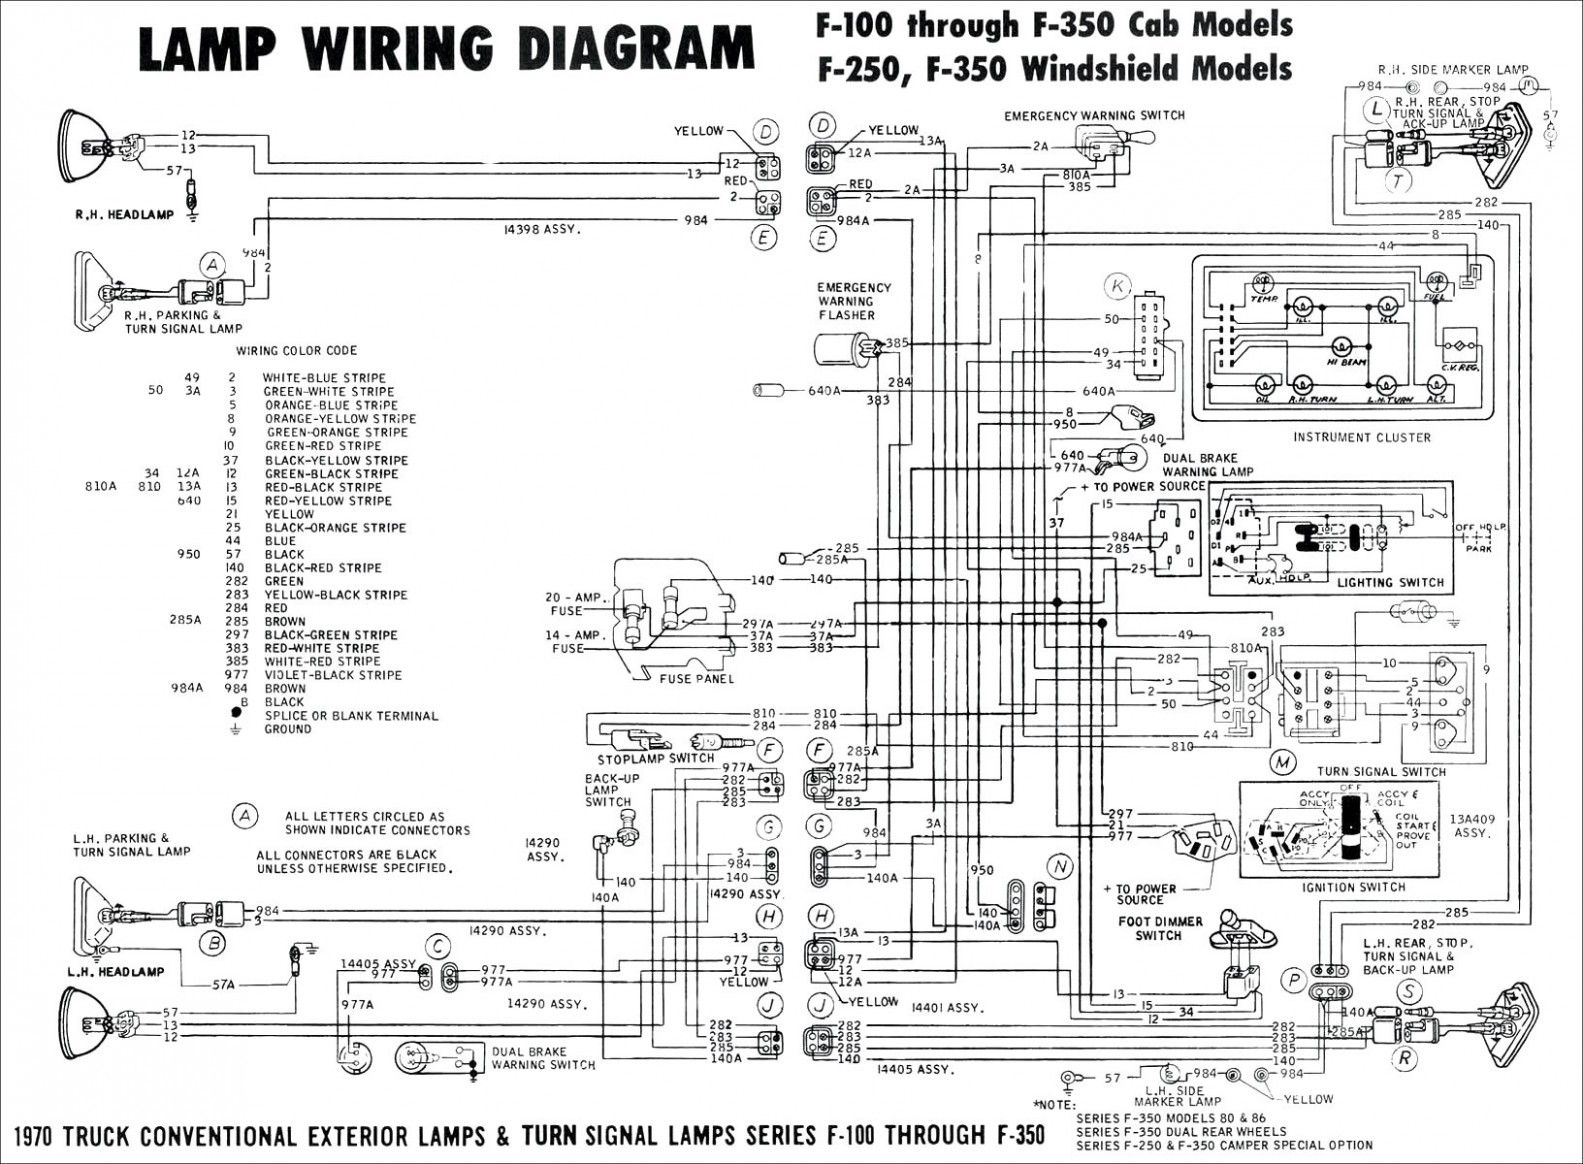 Engine Wiring Diagram For 6 Ford Ranger Malaysia Di